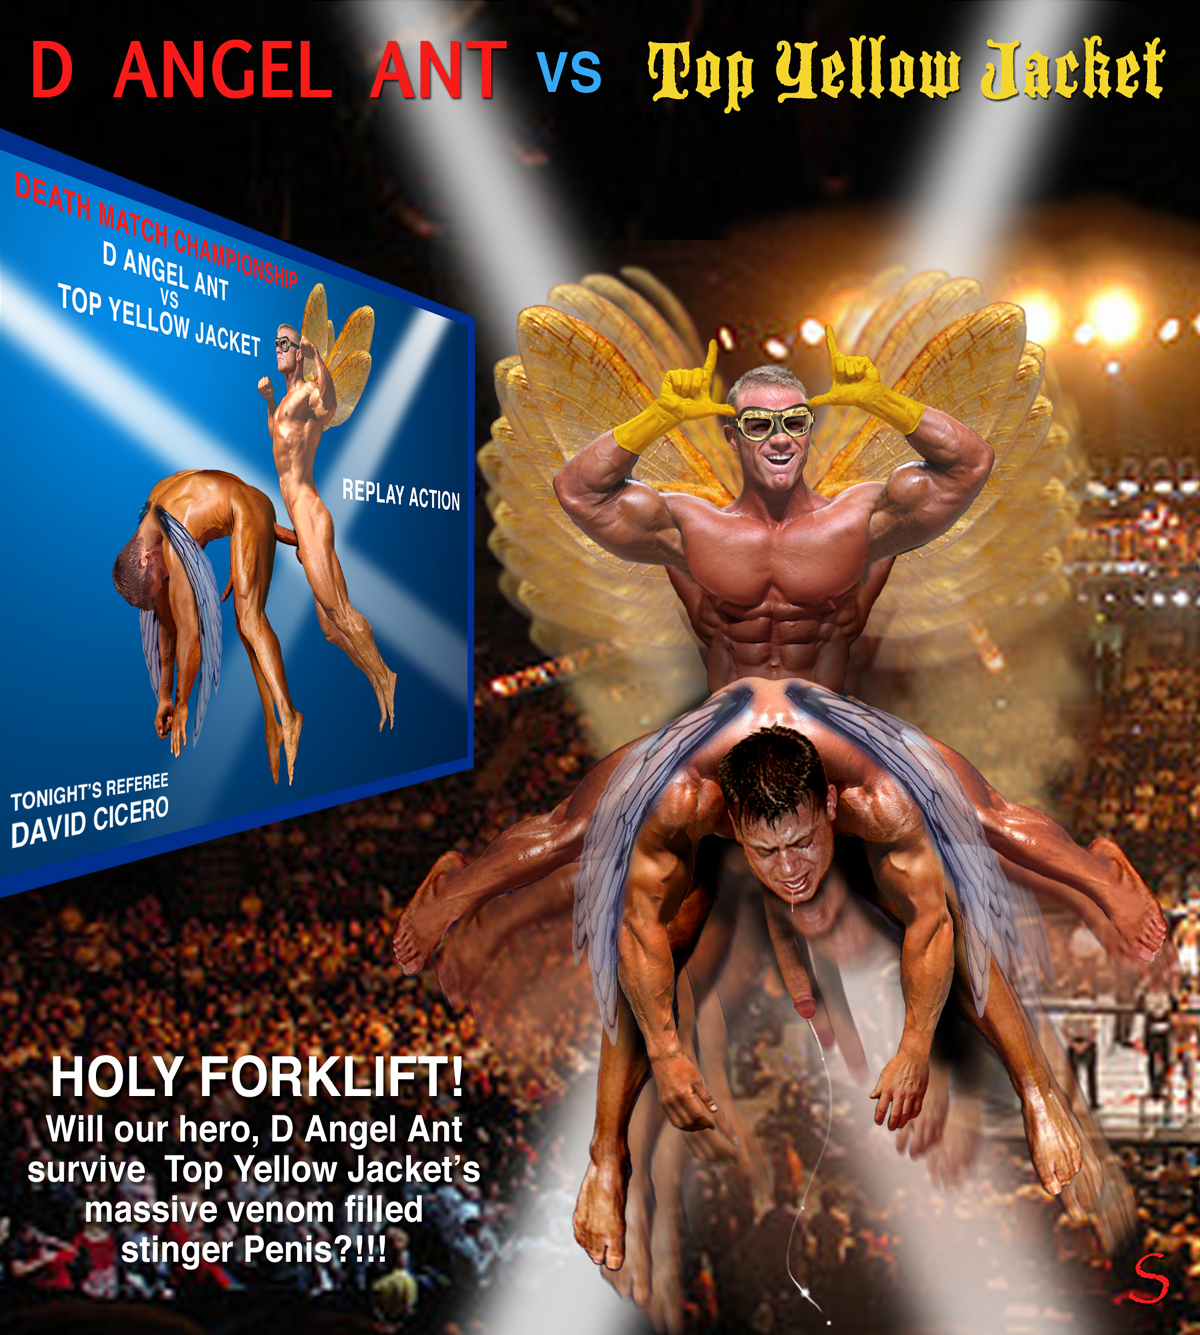 ../../Herodotus/D Angel Ant vs Top Yellow Jacket.jpg